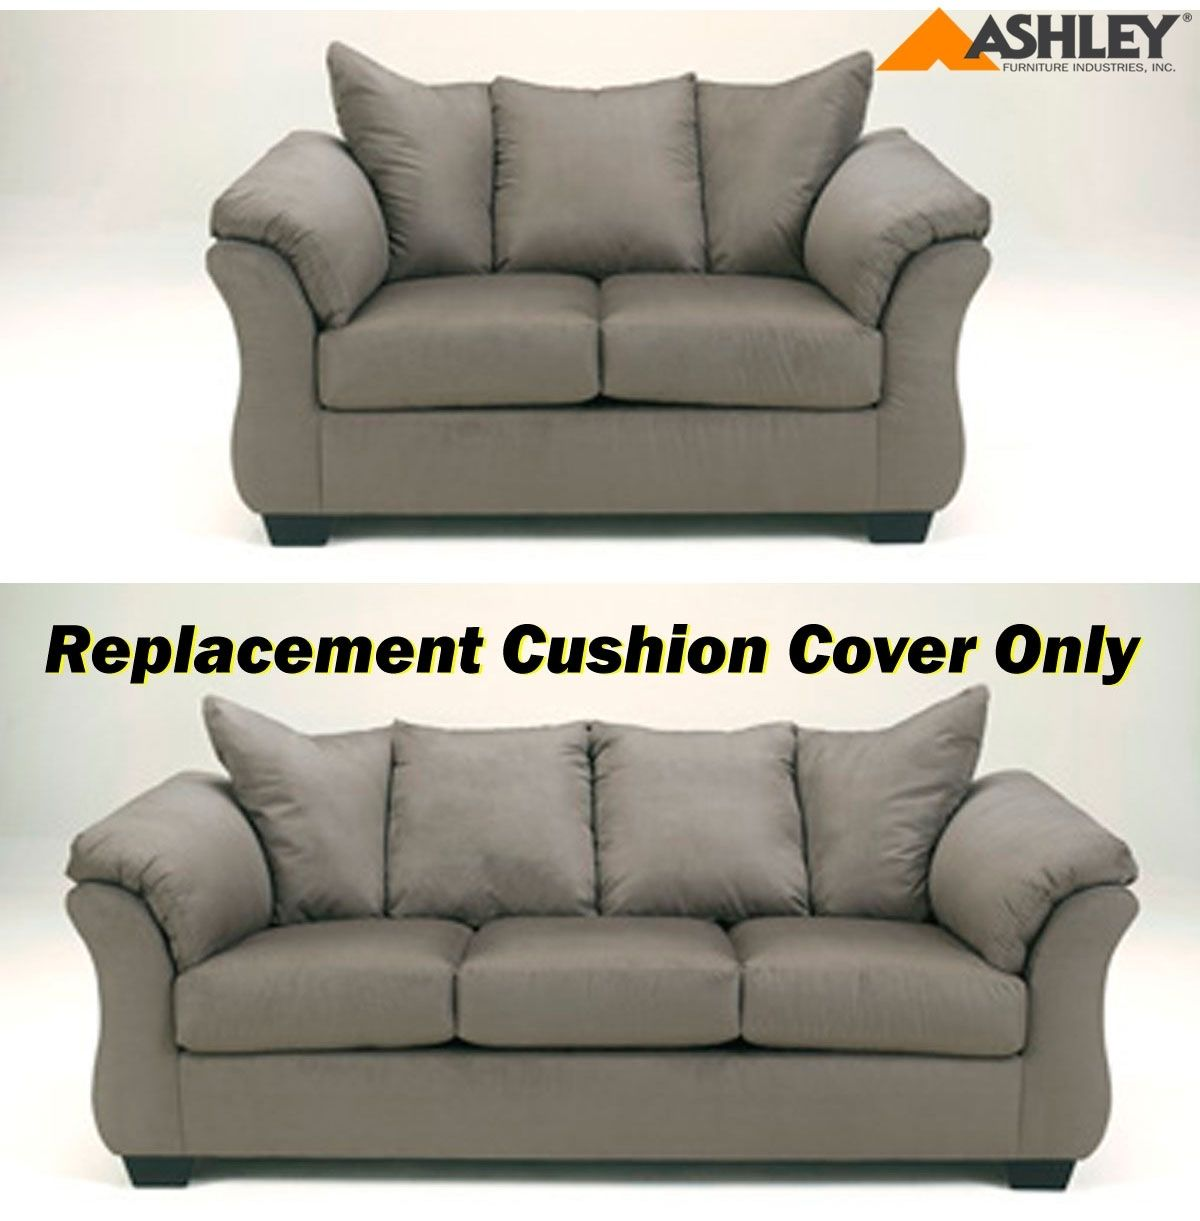 Best Collections Of Sofa And Couch Sofacouchs Ashley Darcy Replacement Cushion